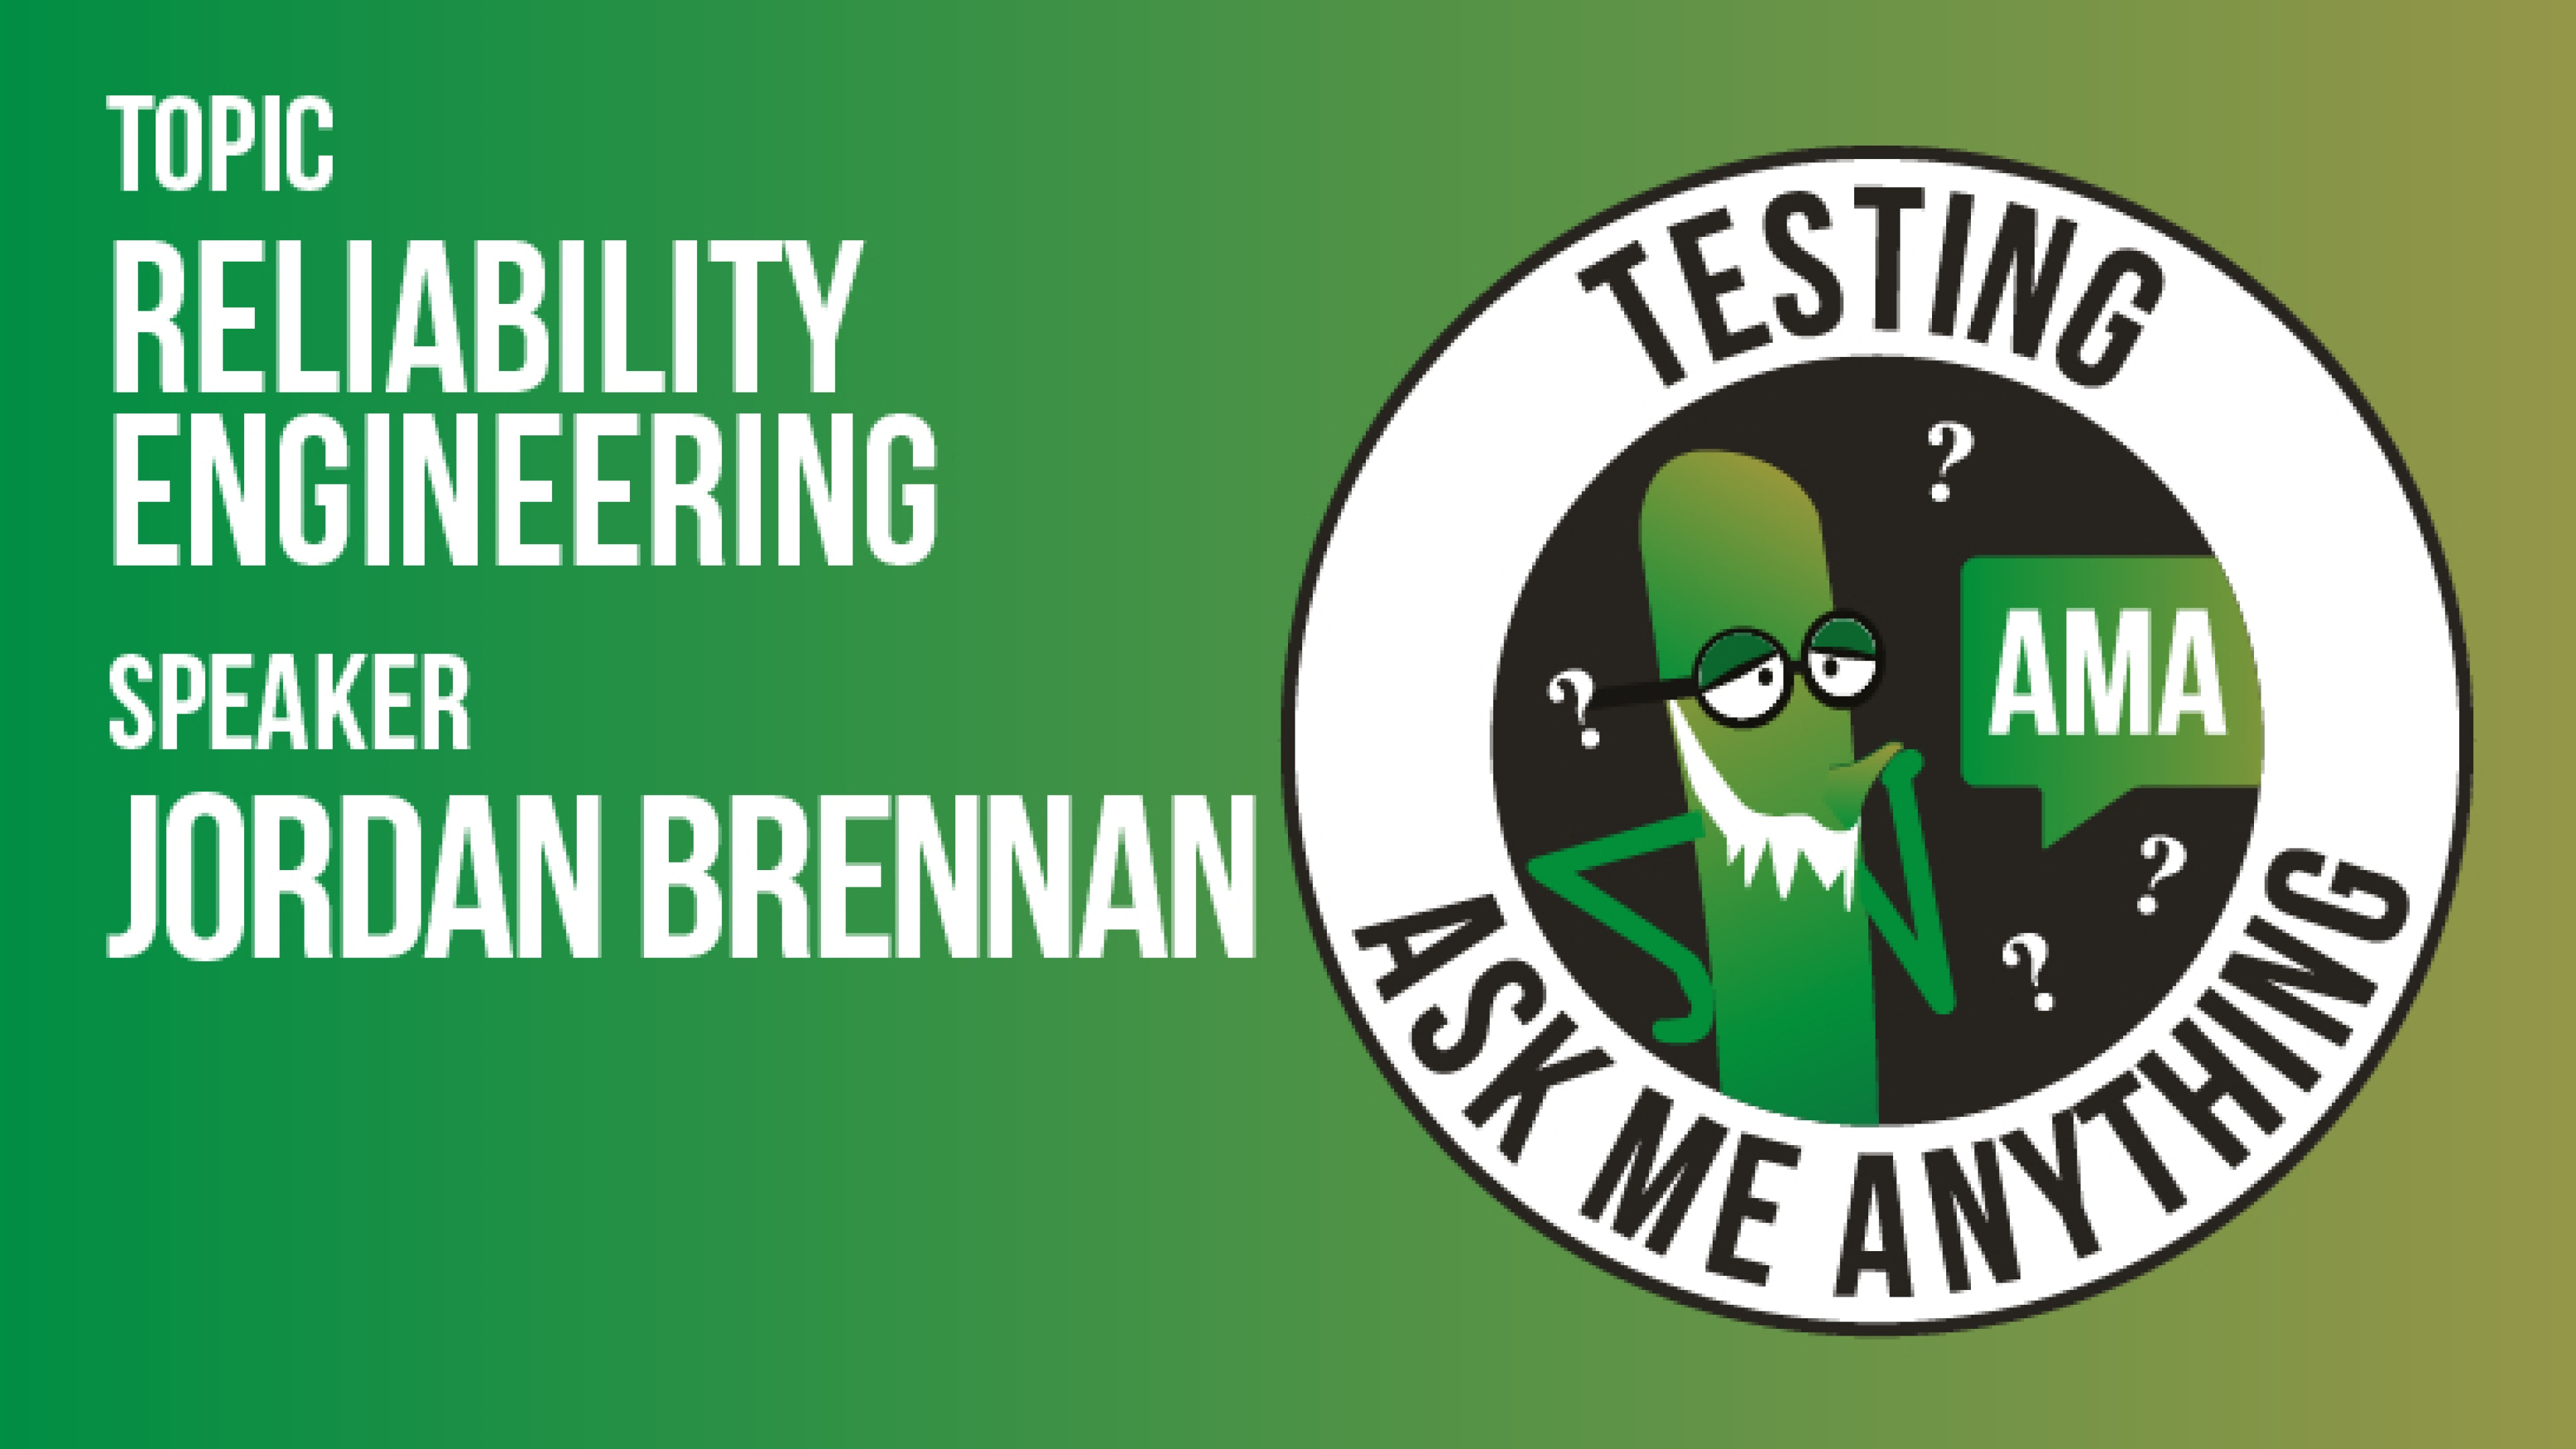 Testing Ask Me Anything - Reliability Engineering - Jordan Brennan